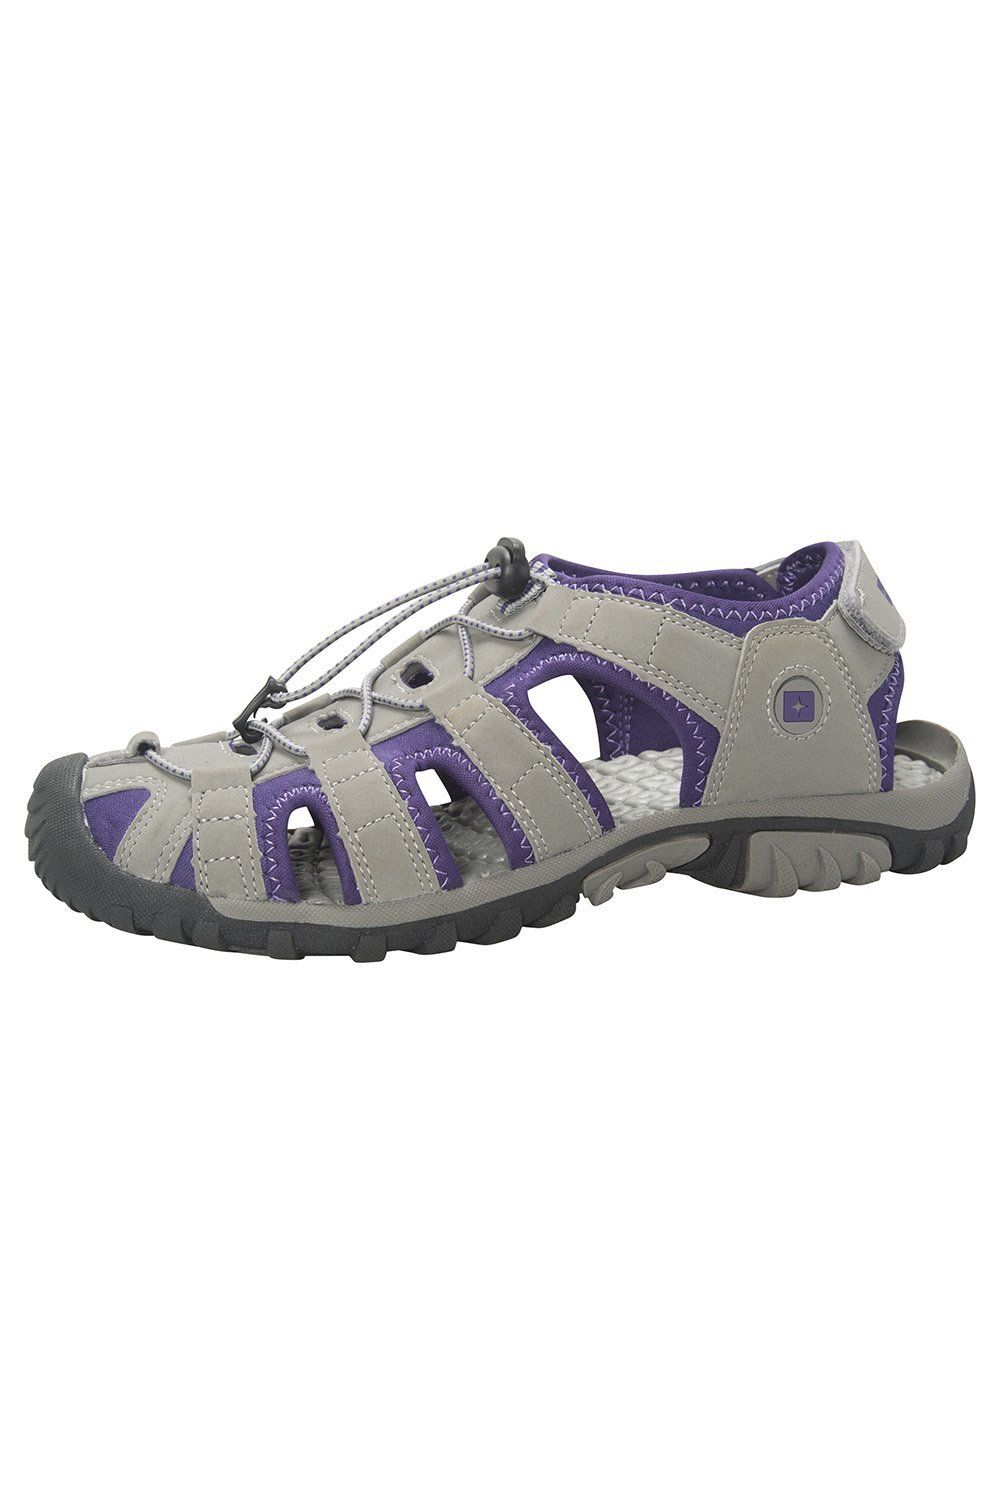 41ce1379a Mountain Warehouse Trek Womens Sporty Shandal Outdoor Walking Shoes    Find  out more details by clicking the image   Jelly Sandals